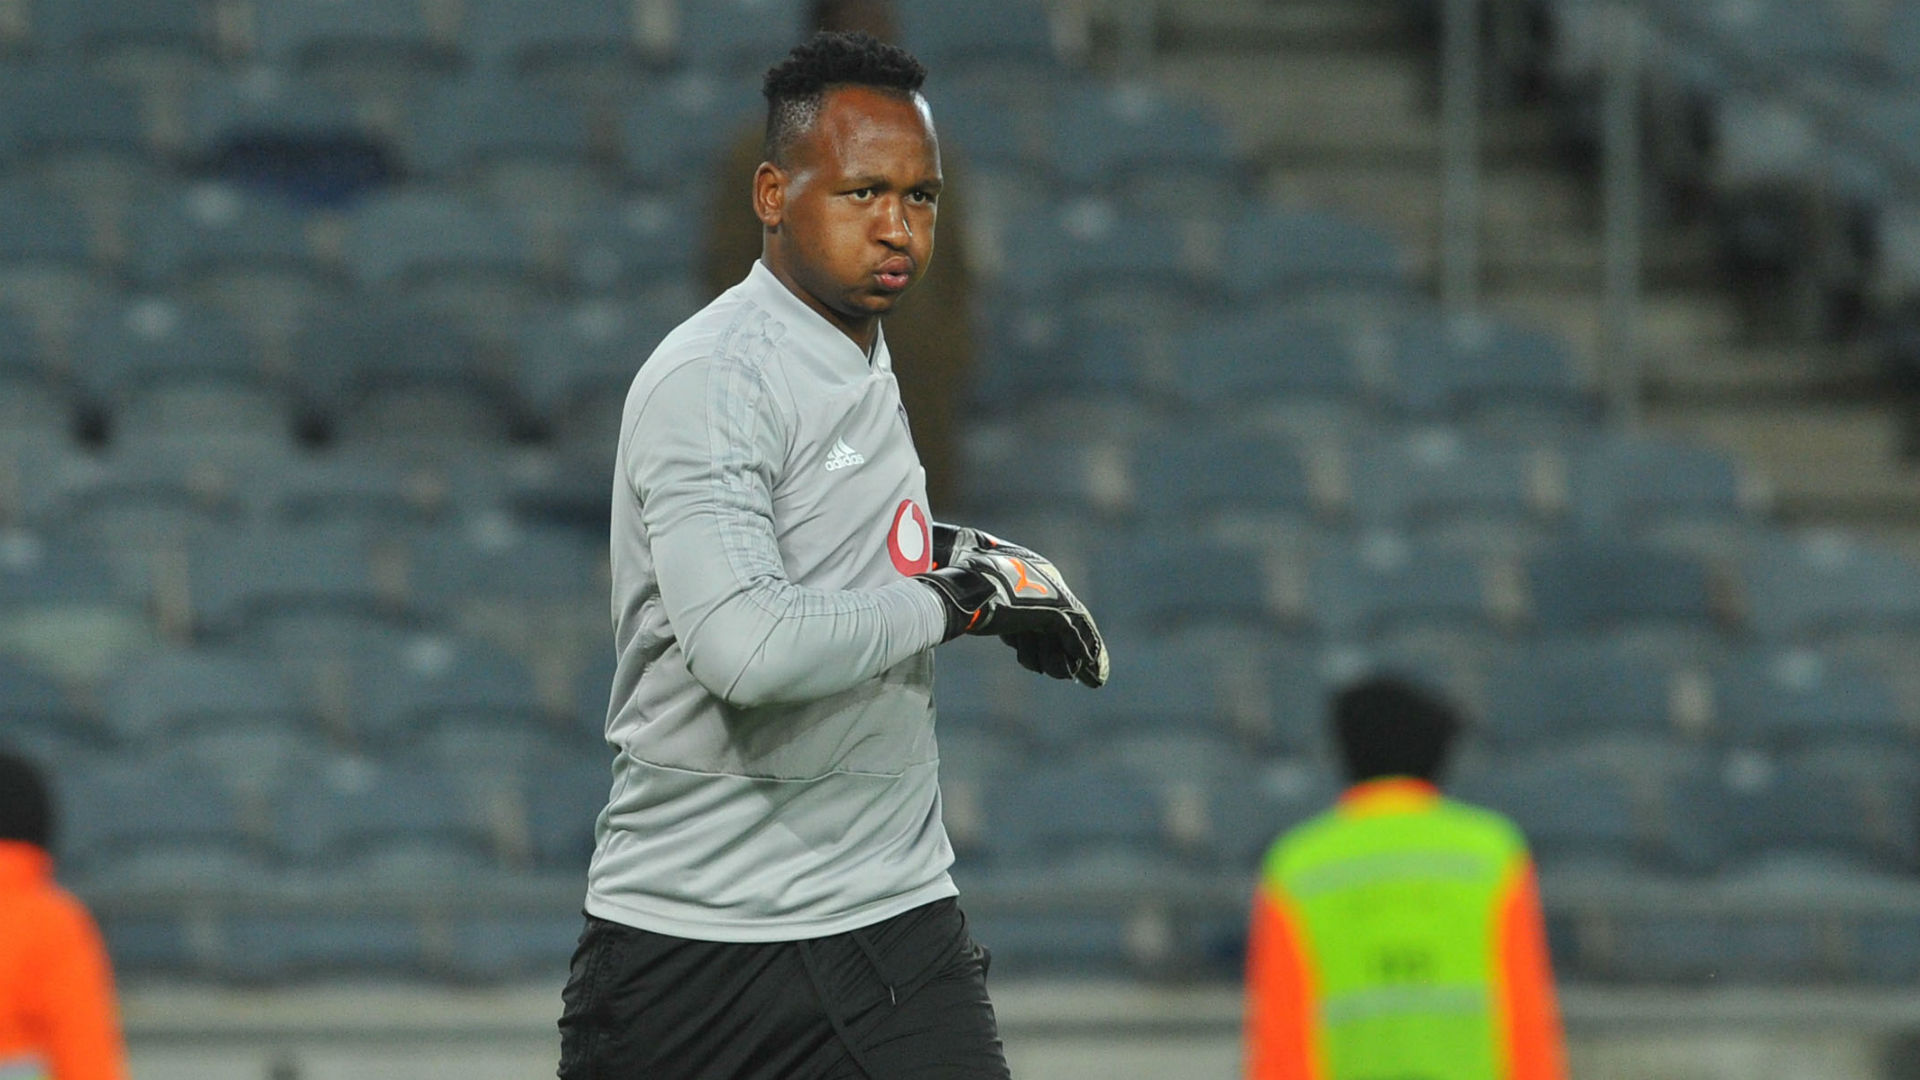 Orlando Pirates goalkeeper Khuzwayo removed from CBL Cup starting XI to face Kaizer Chiefs